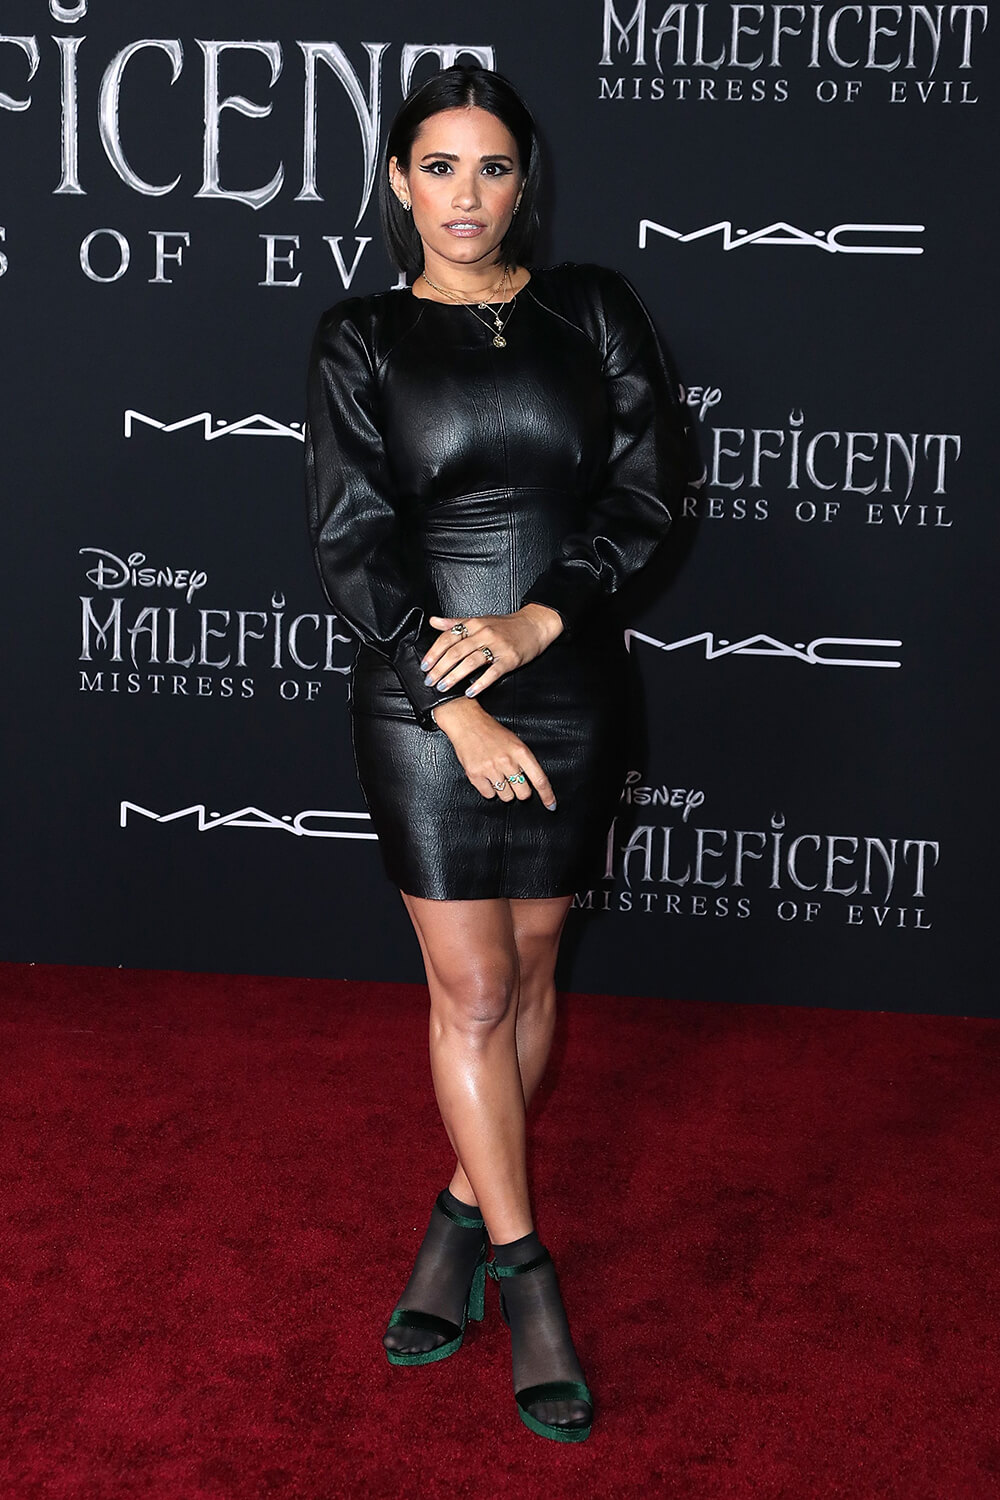 Tiffany Smith attending Maleficent Mistress of Evil' film premiere